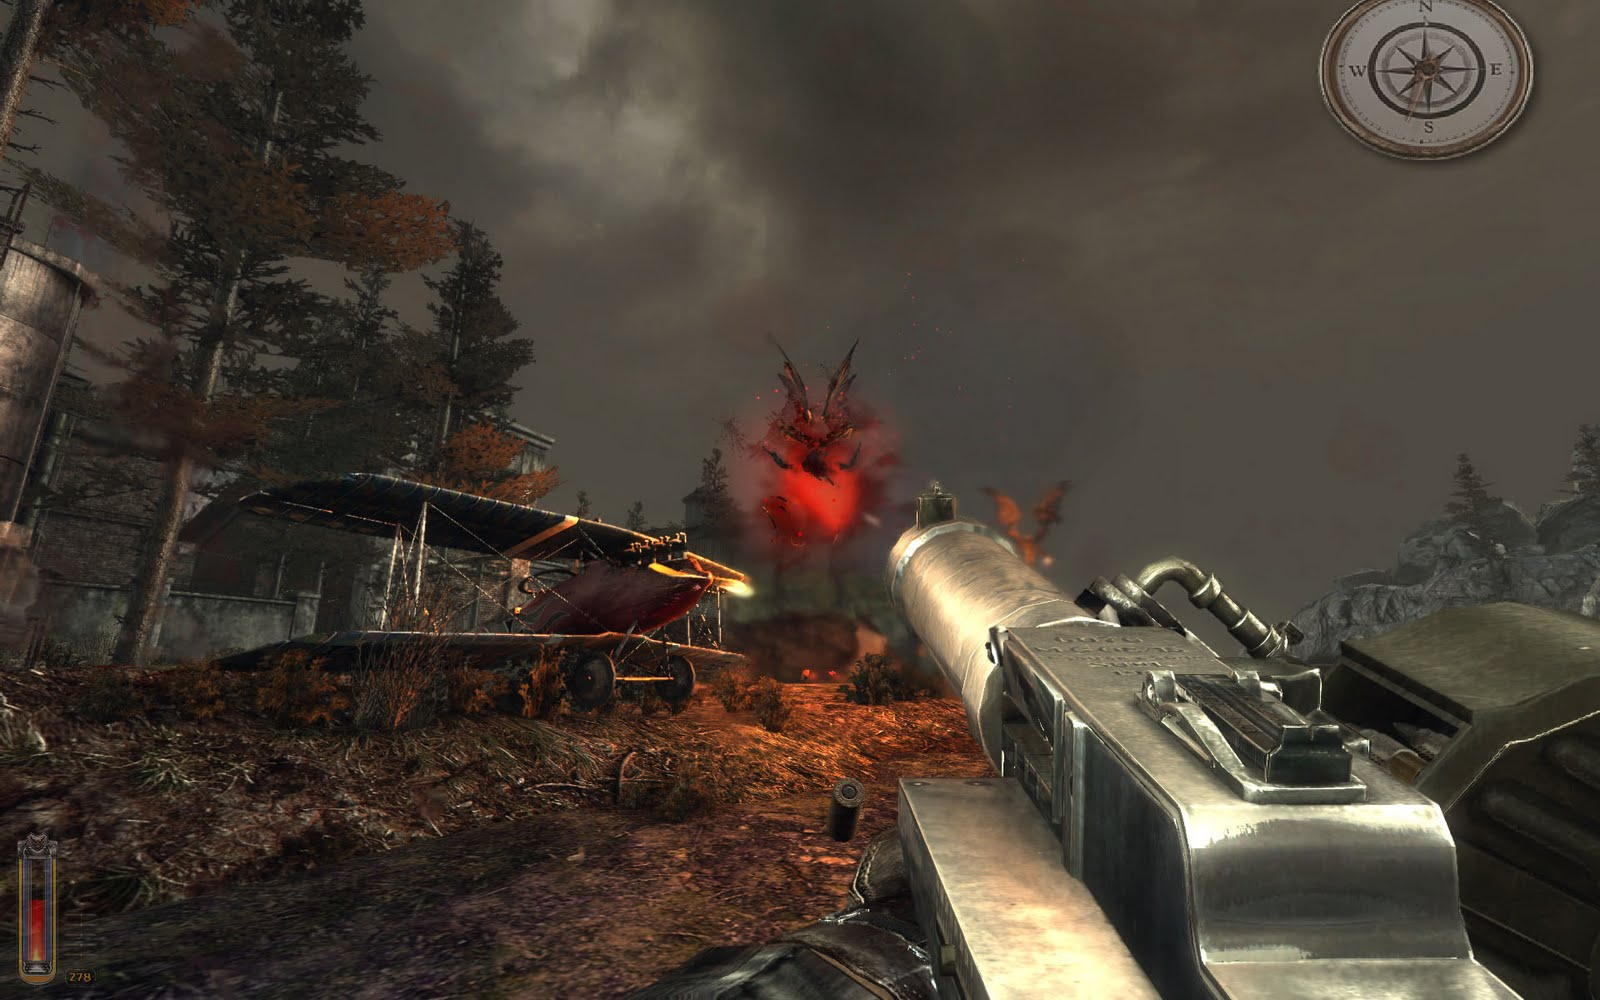 3d action shooting games free download full version